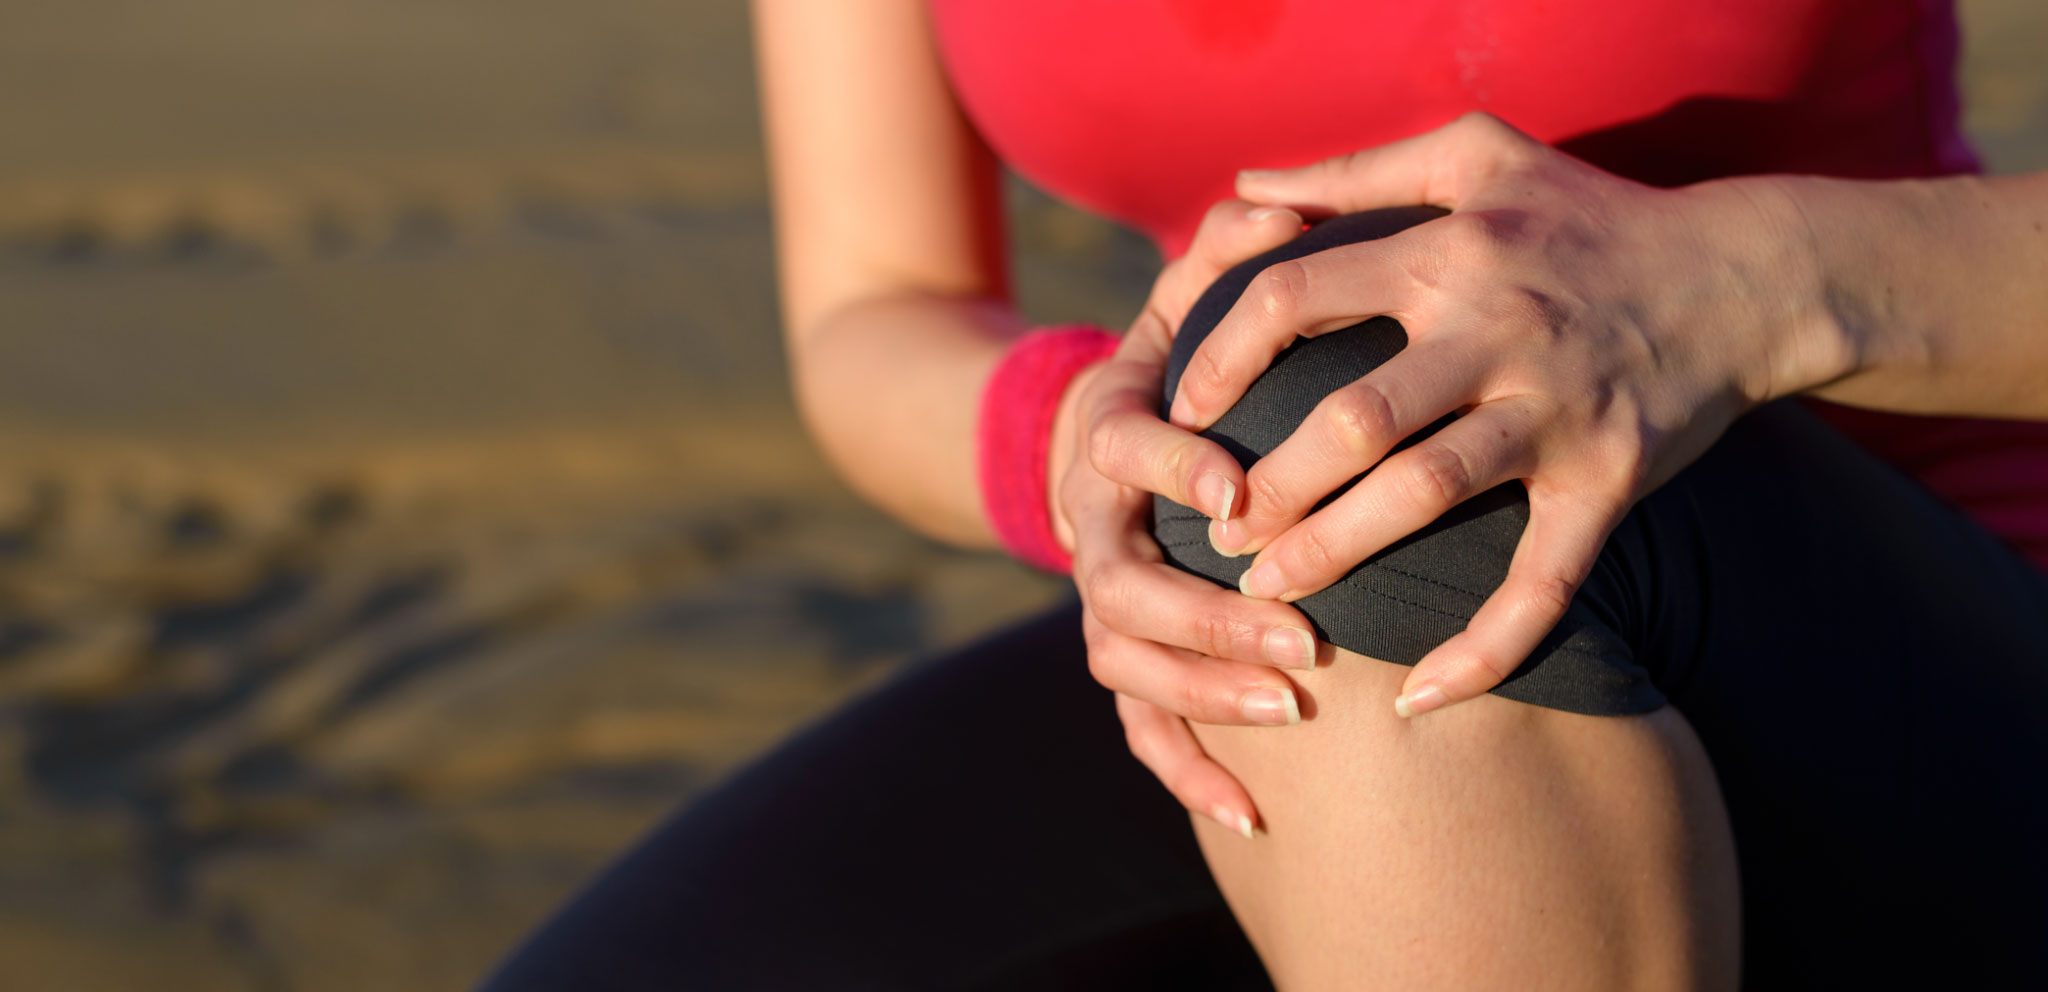 stem cell therapy, Can Stem Cell Therapy Reduce Joint Pain?